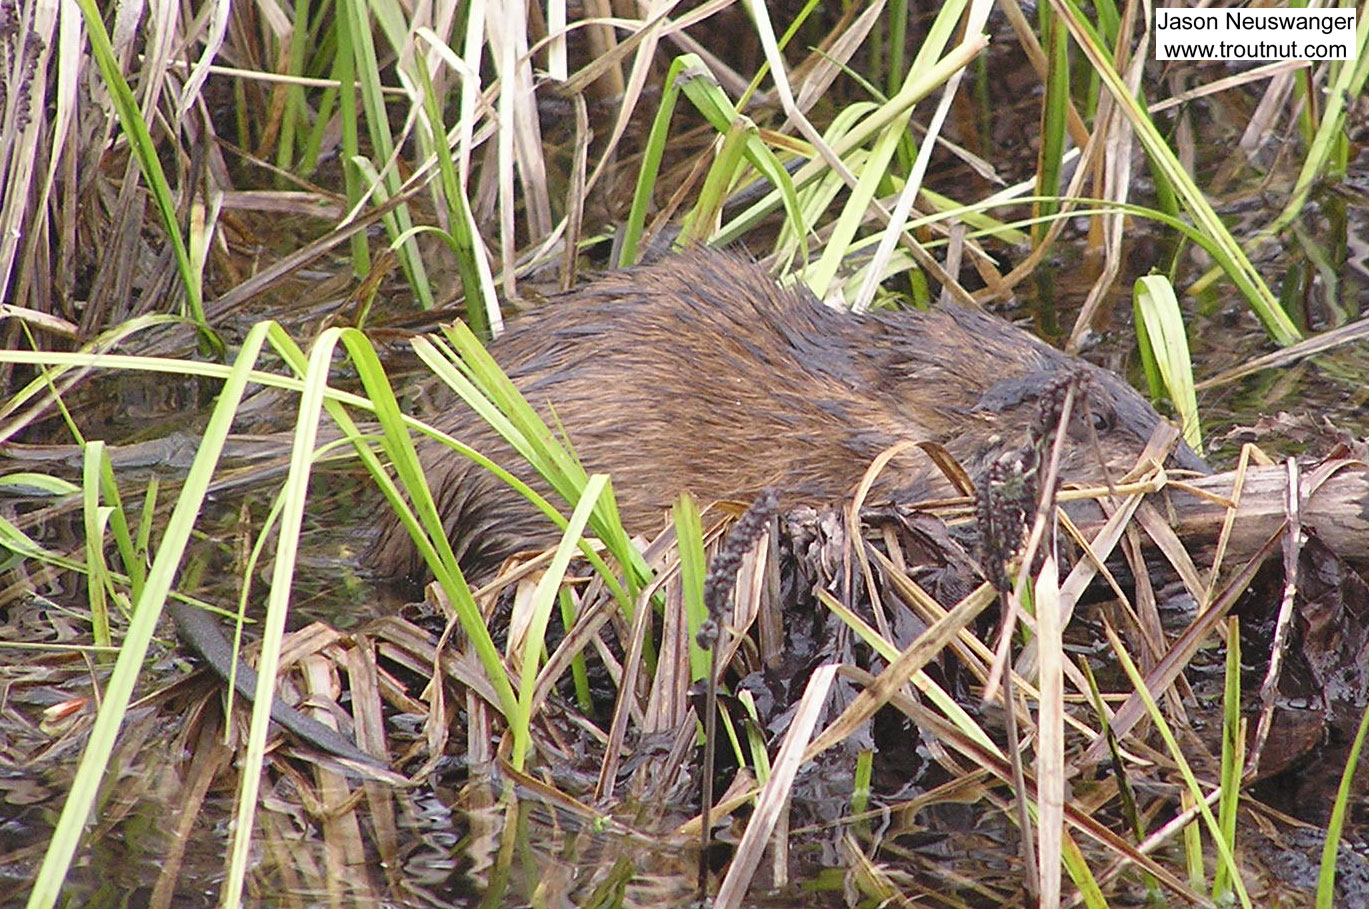 This muskrat swam around me for a while as I fished a caddisfly hatch. From the Namekagon River in Wisconsin.